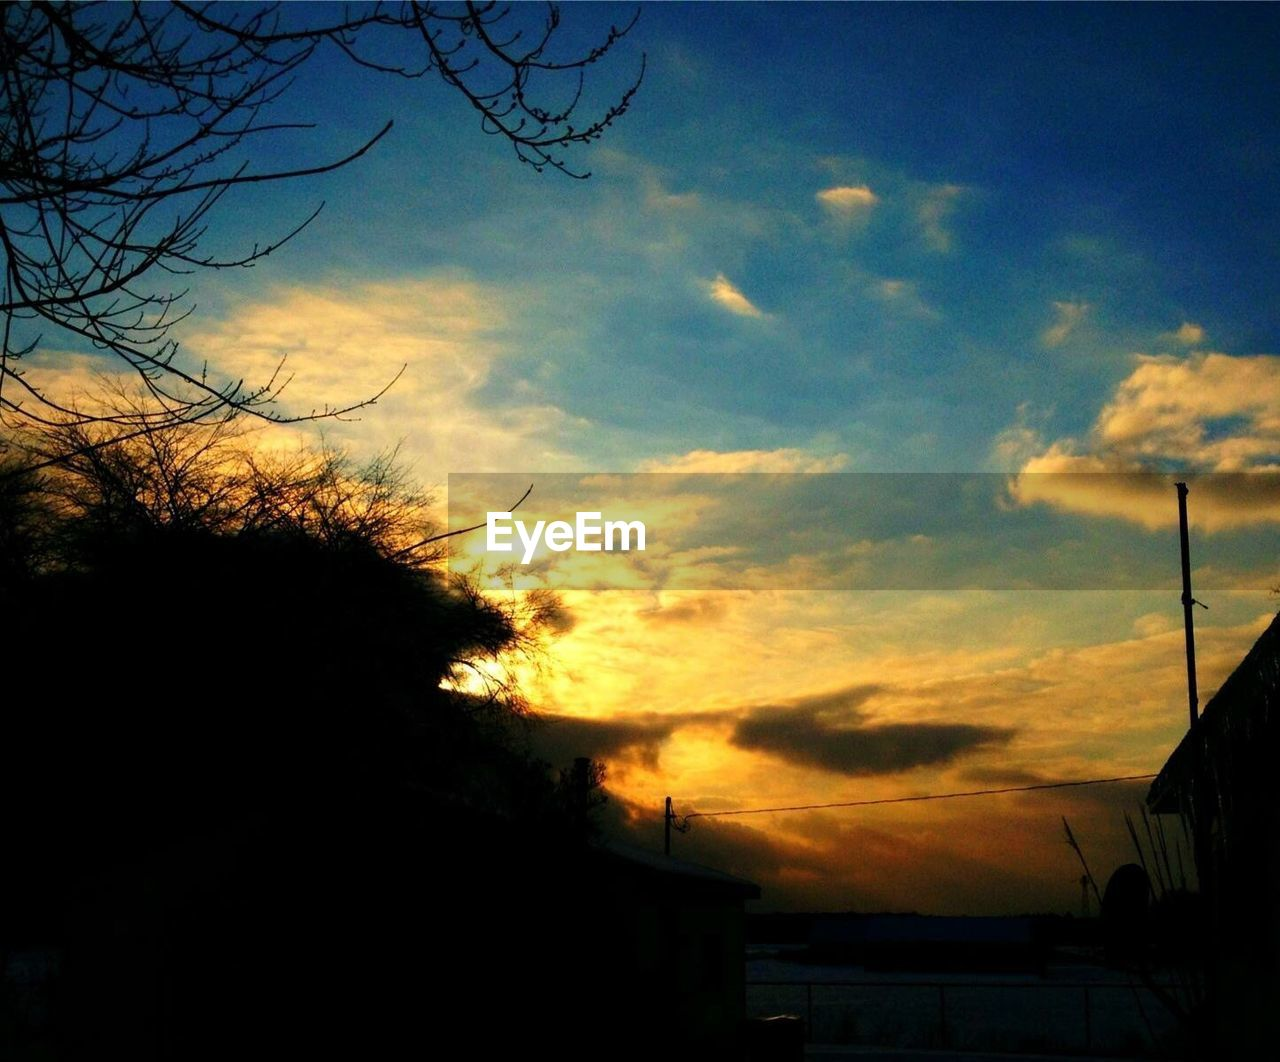 sky, sunset, silhouette, nature, no people, cloud - sky, outdoors, beauty in nature, low angle view, tree, scenics, day